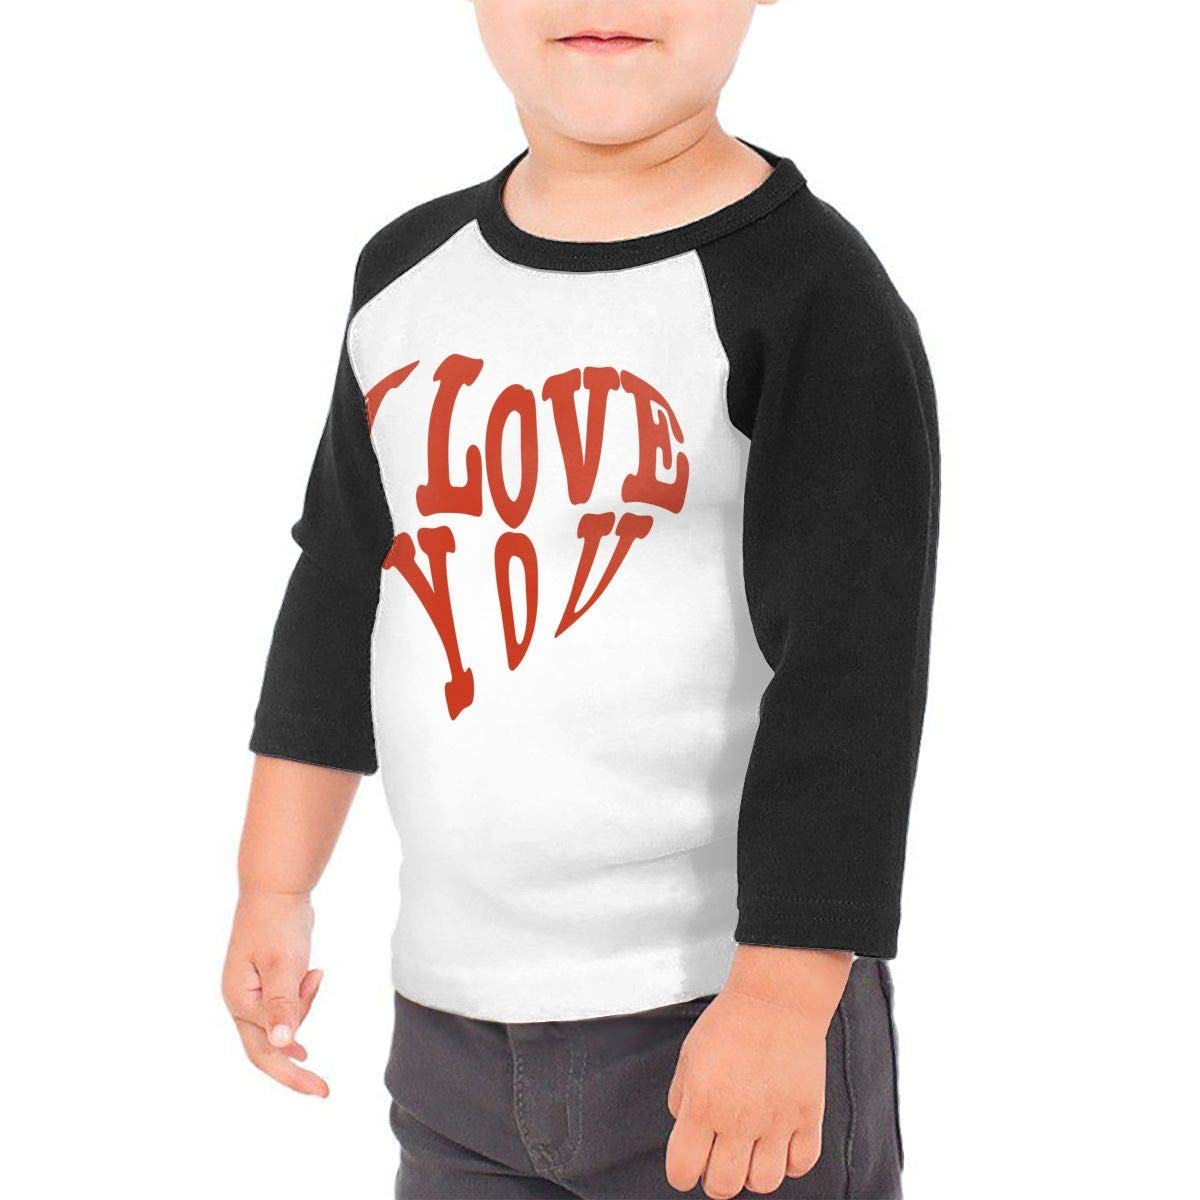 I Love You Unisex Toddler Baseball Jersey Contrast 3//4 Sleeves Tee